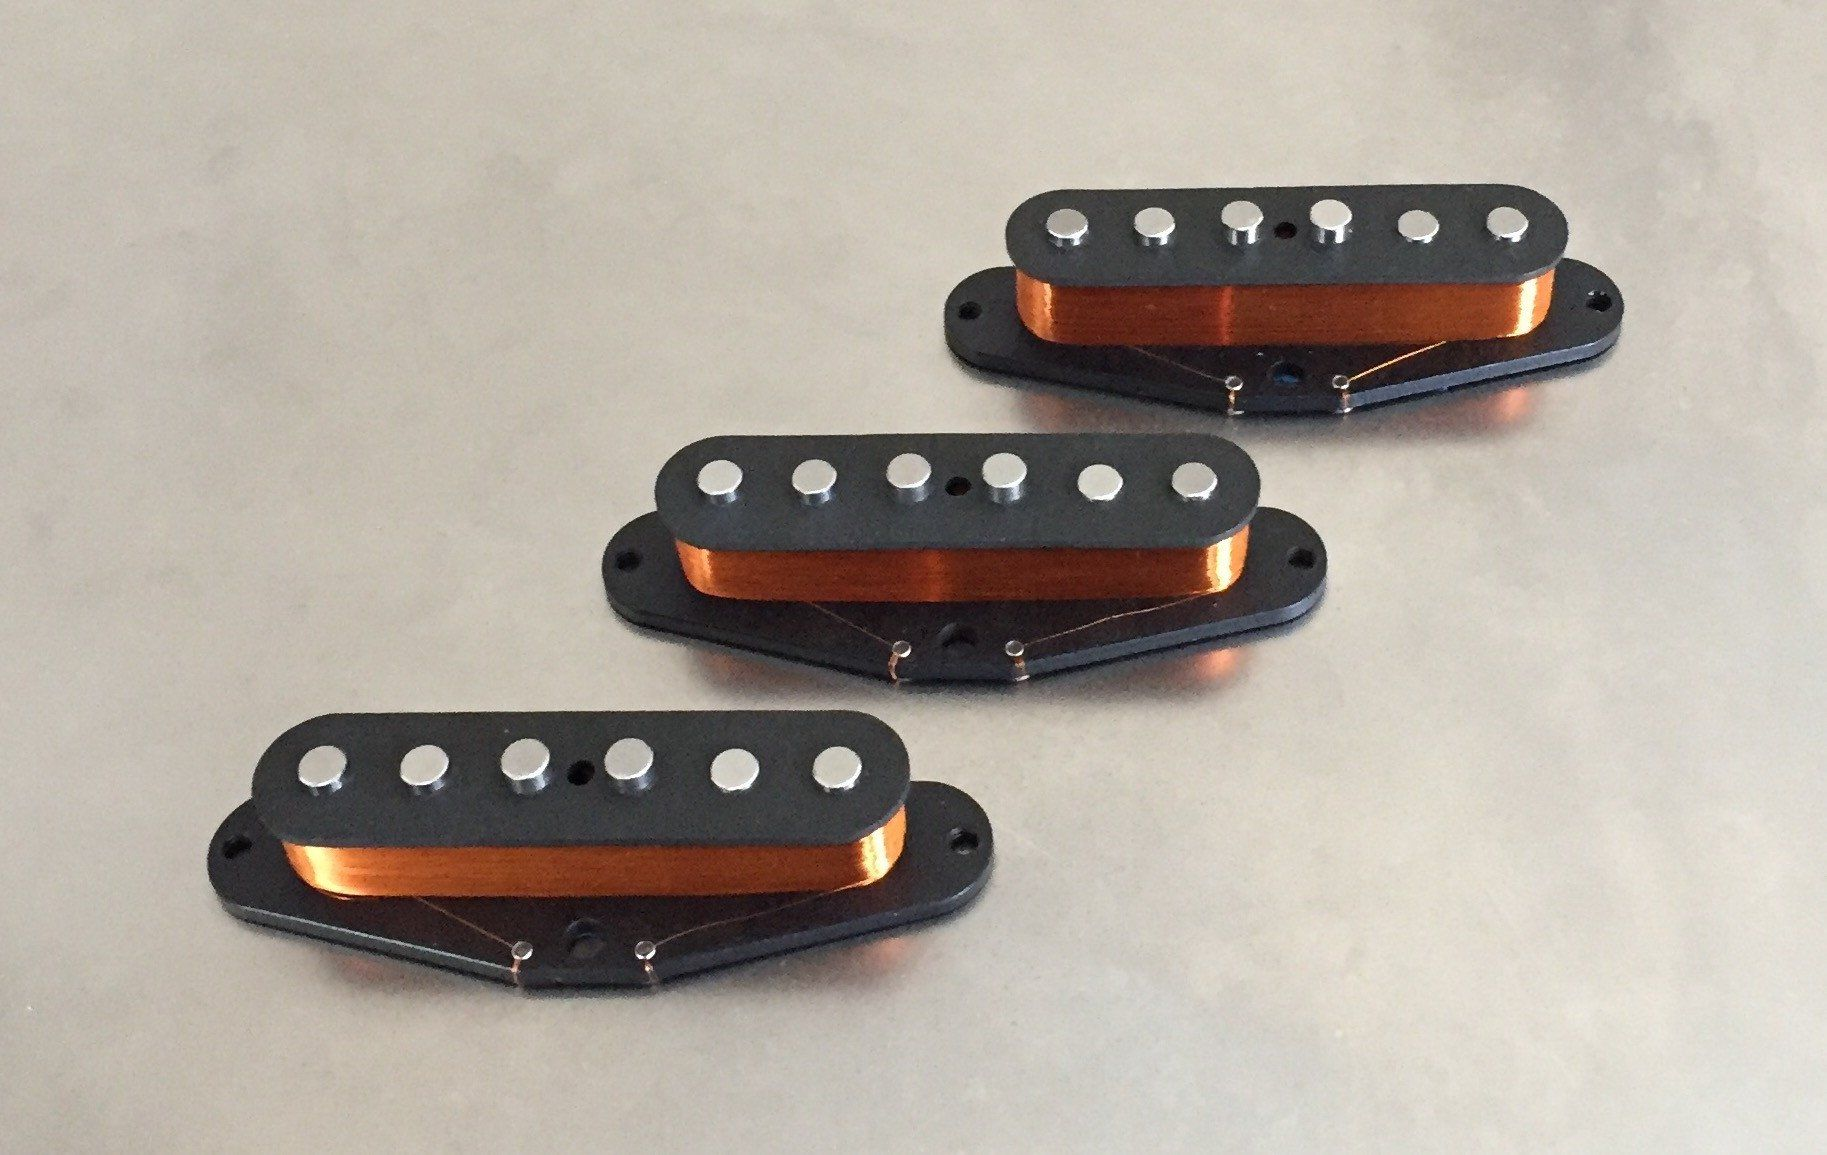 Ric Lutz Pickups Classic pickup set inspired by vintage 1959